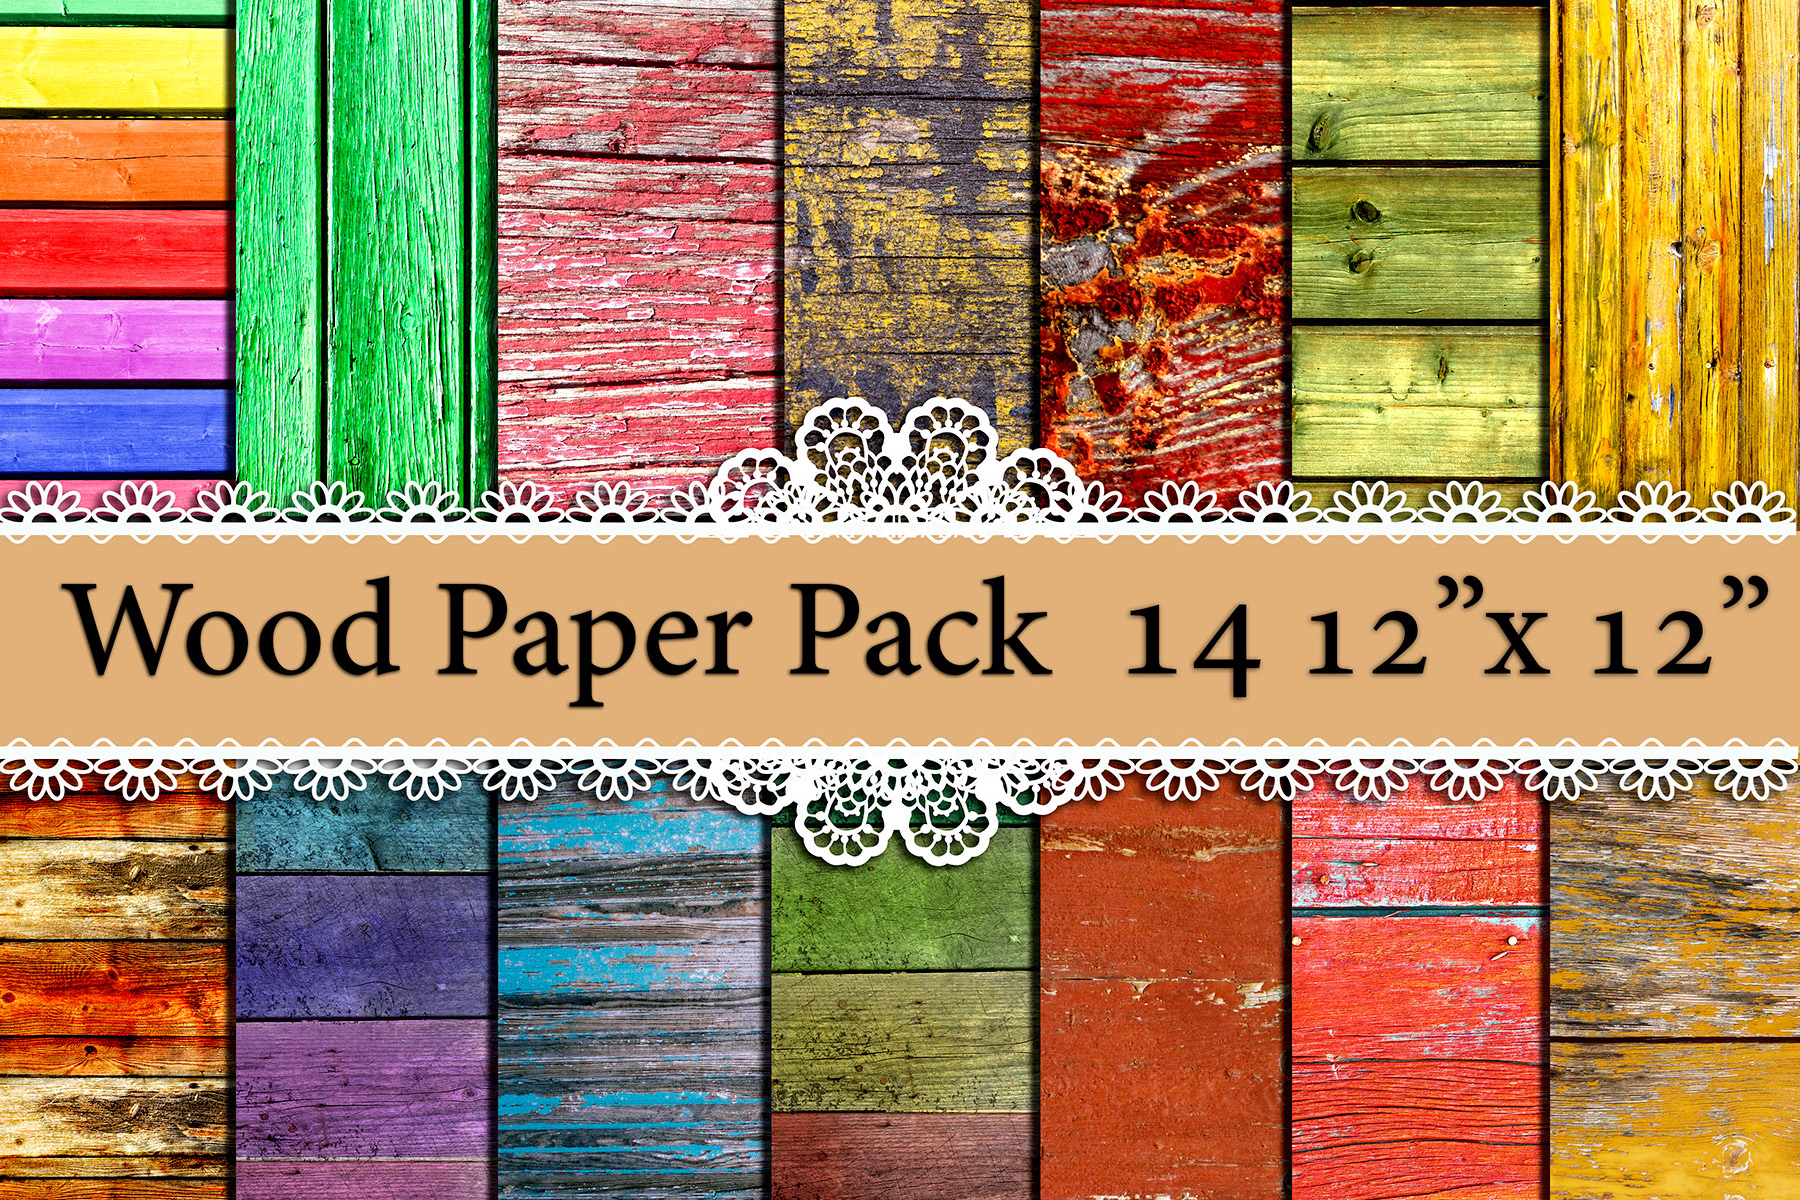 Wood Digital Paper Pack: Graphic By prettydesignstudio